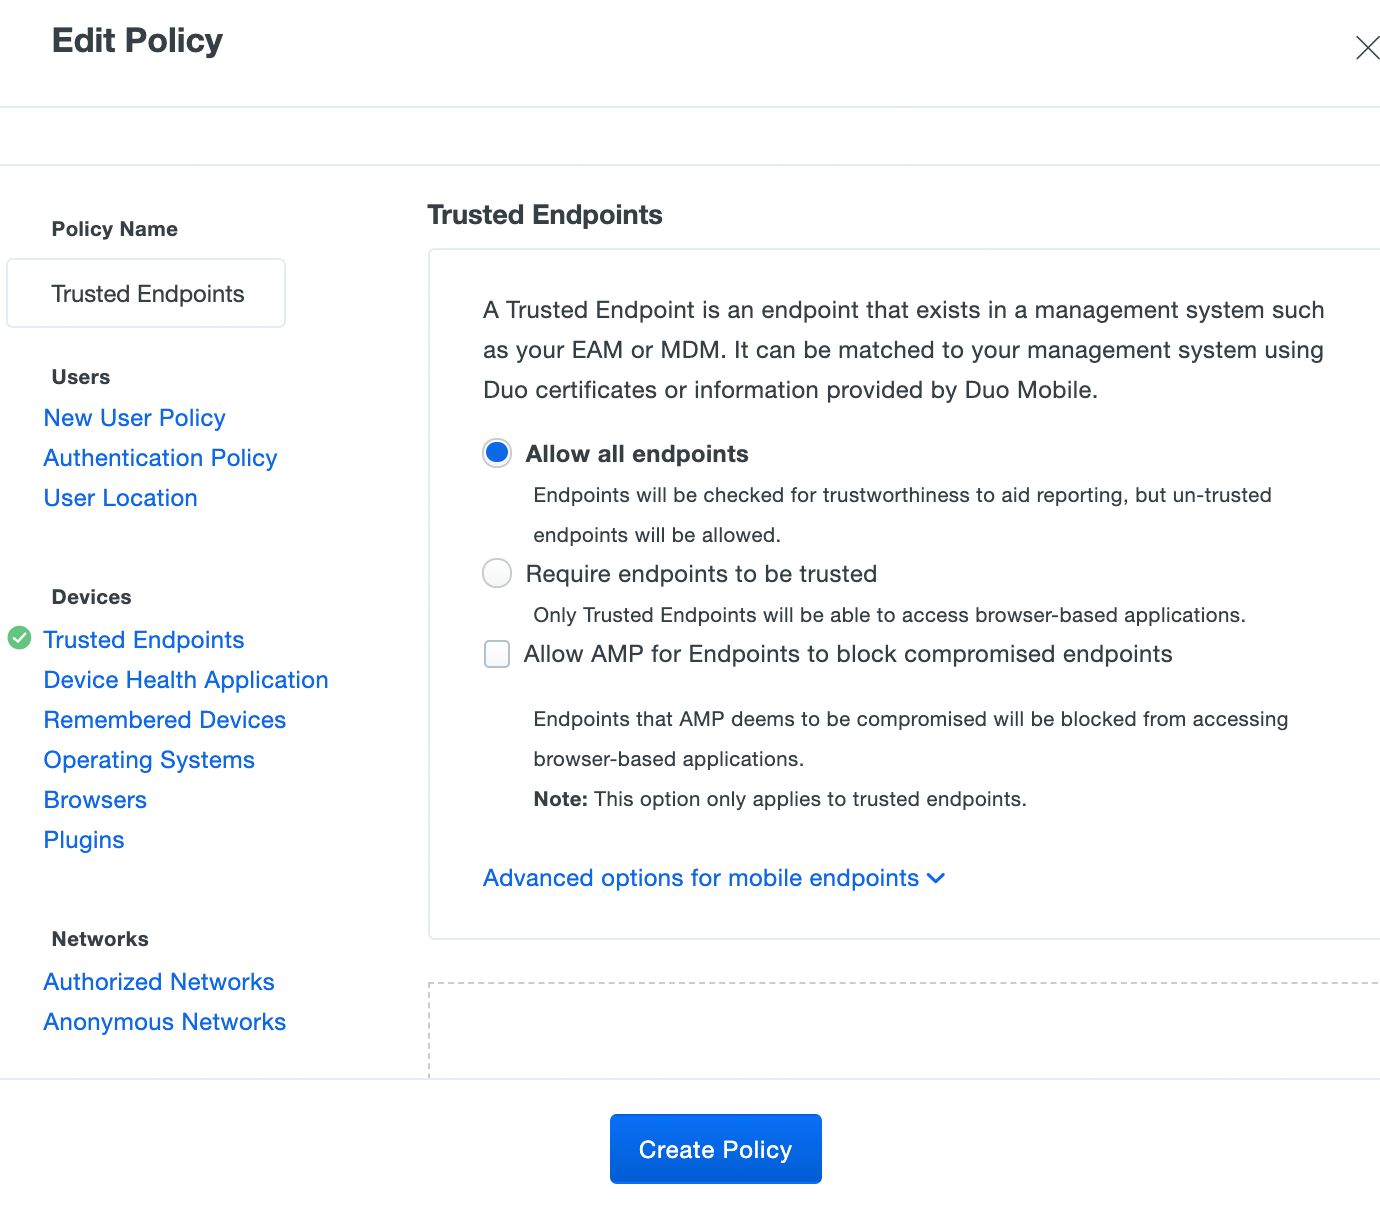 Creating the Trusted Endpoints Policy